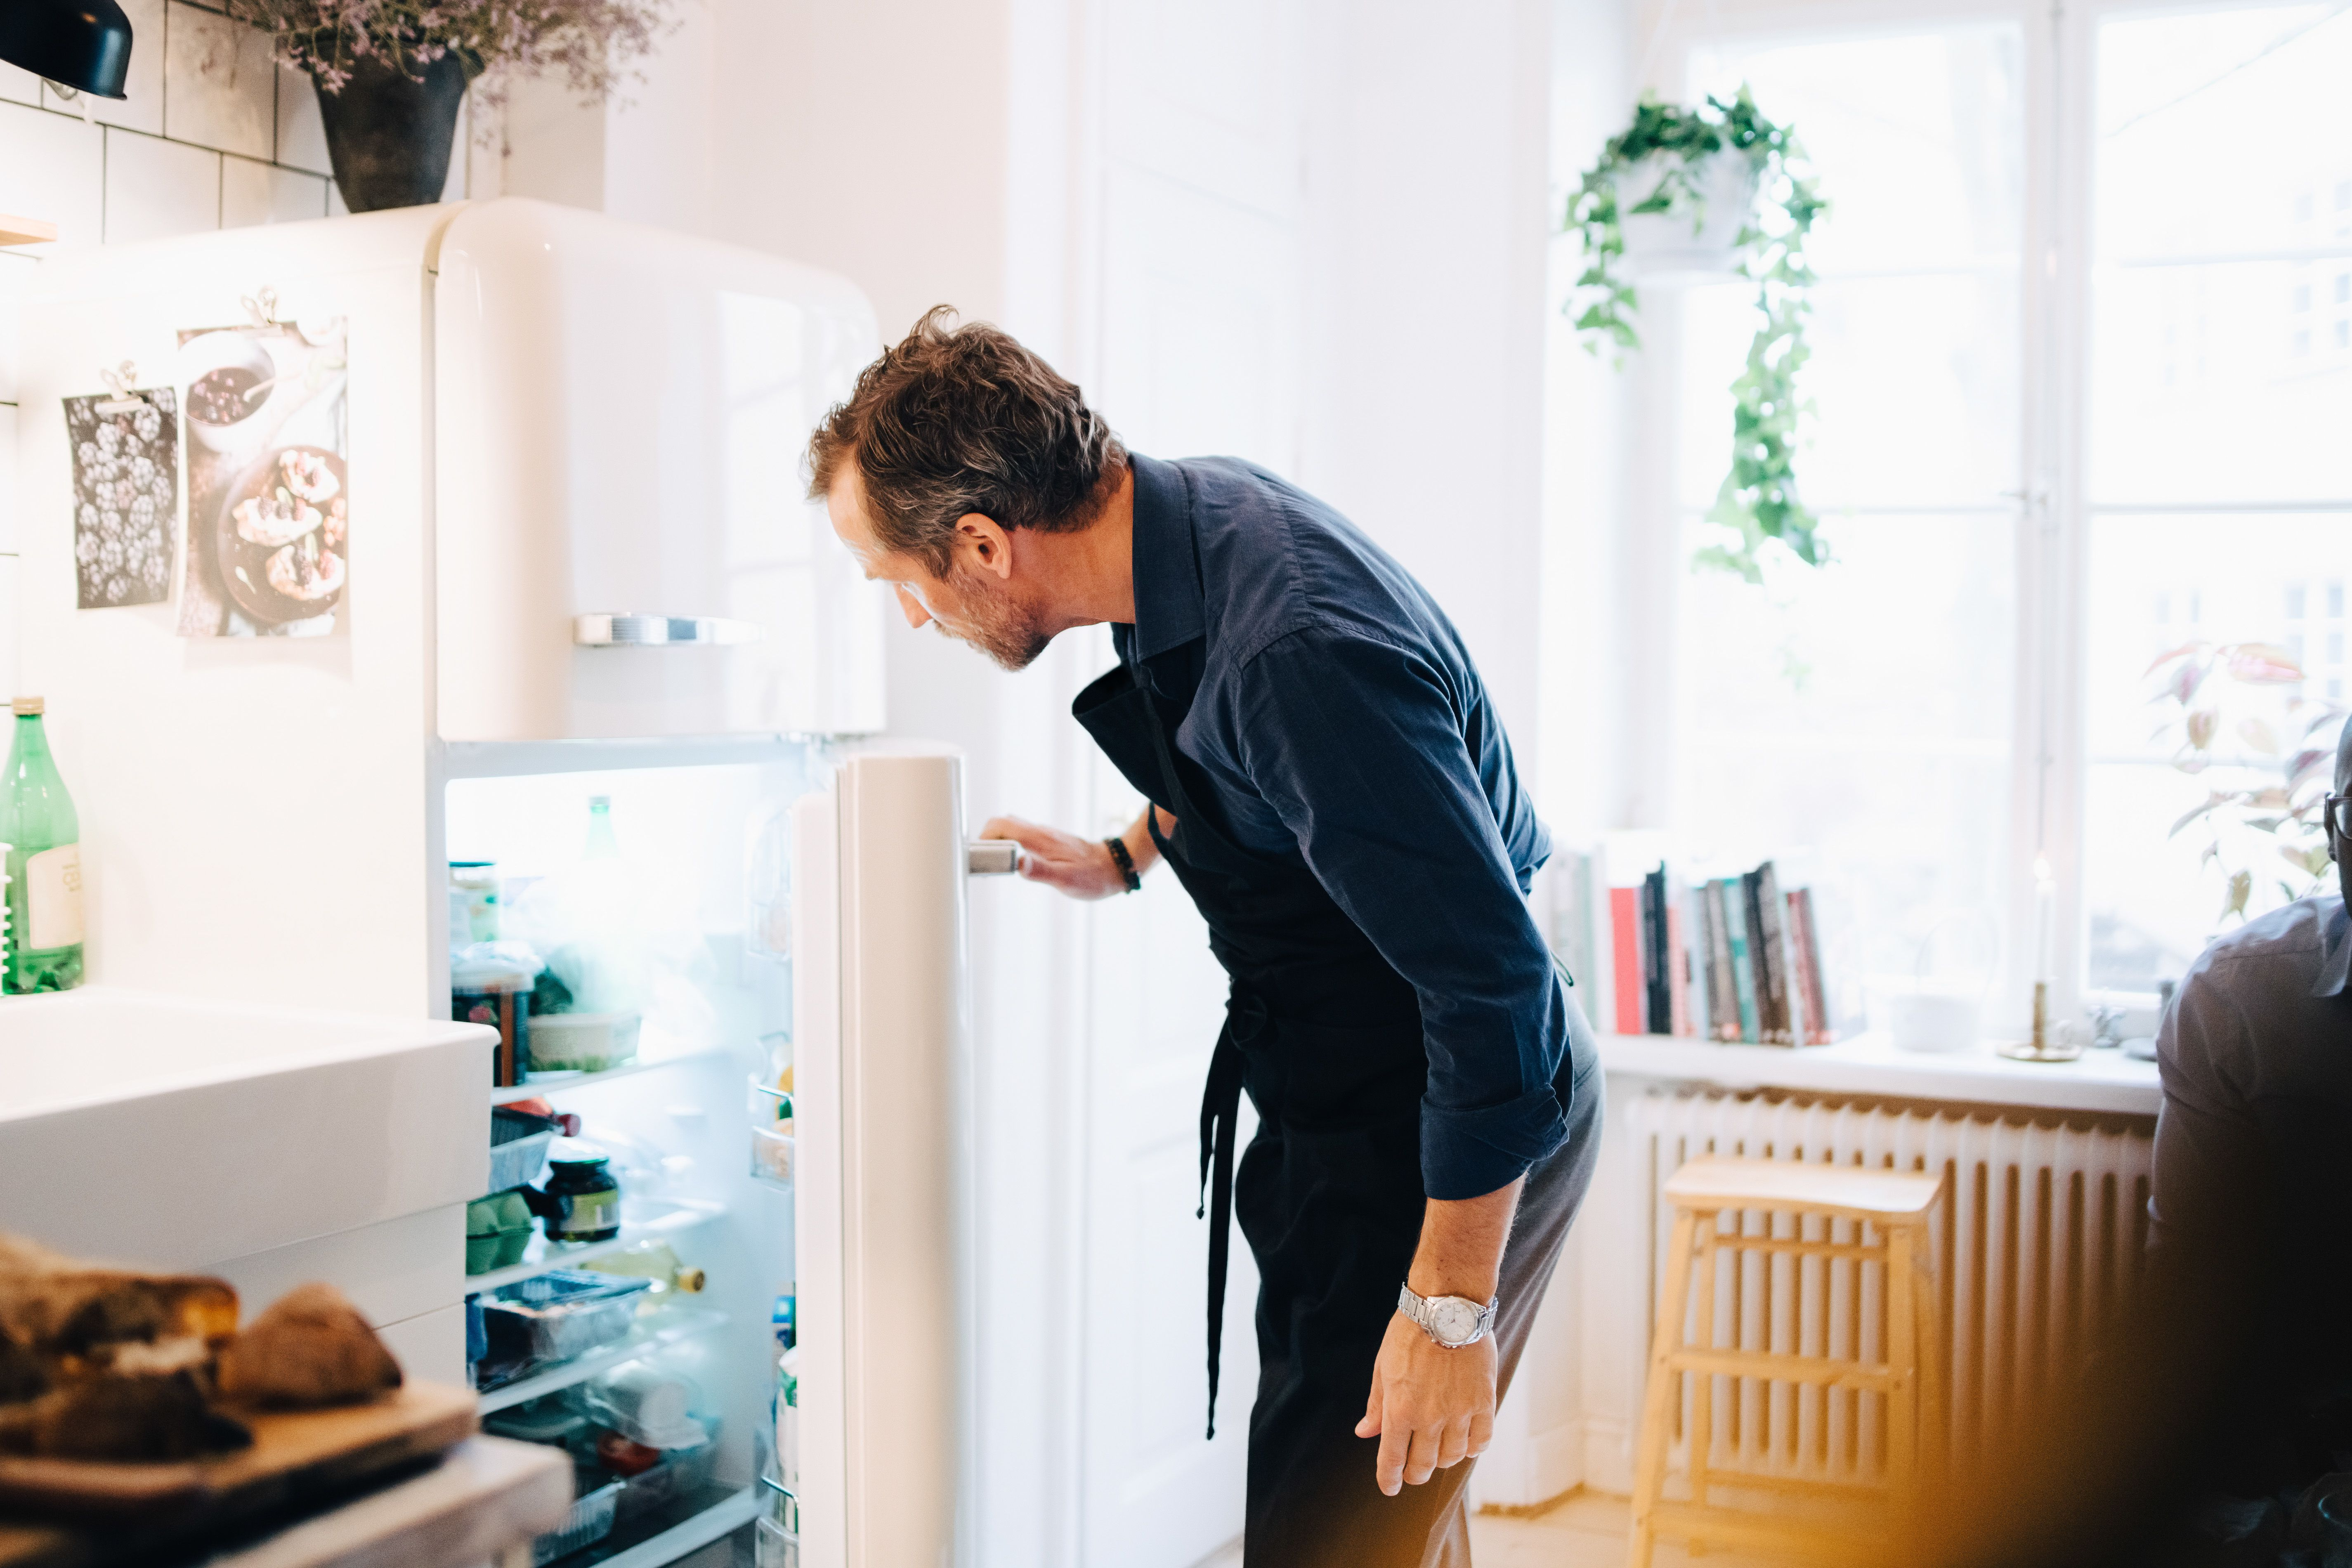 Man looking into refrigerator while standing at kitchen.